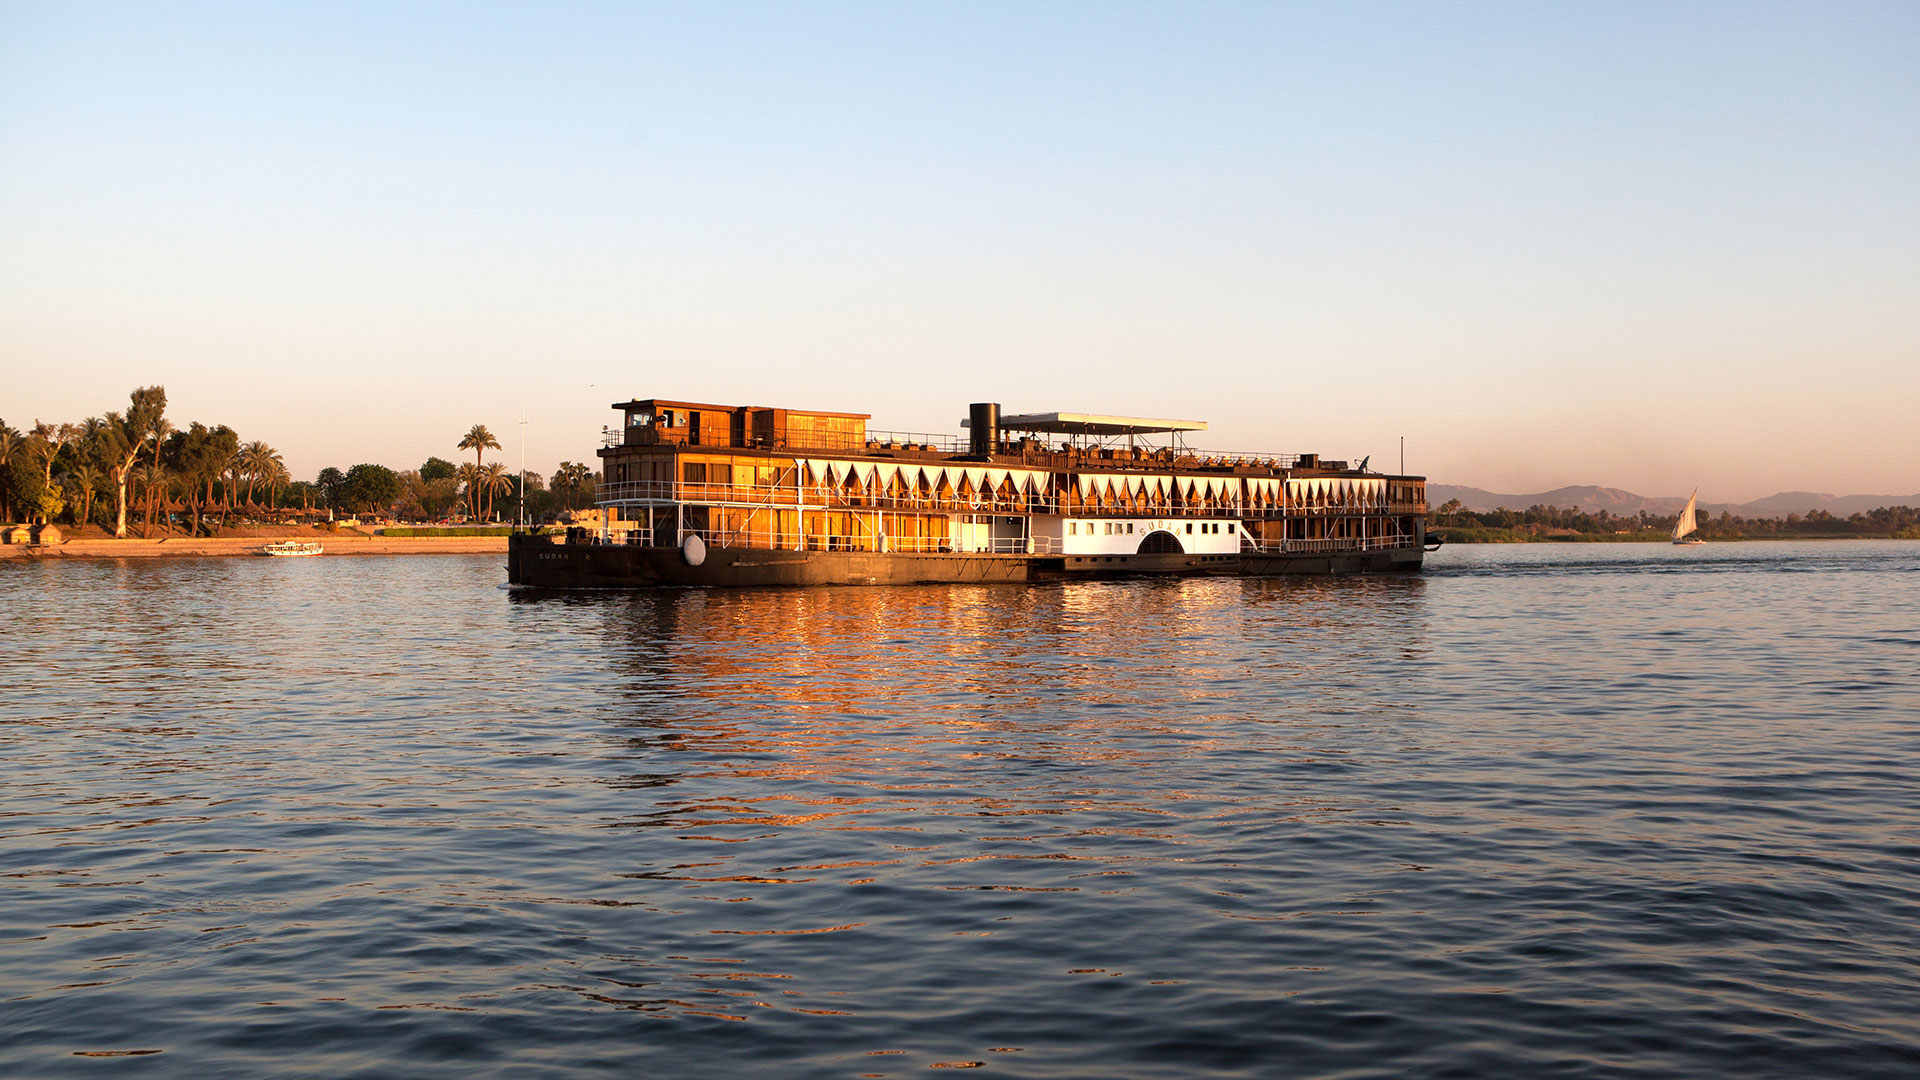 The Best Way to Experience Egypt Is By Boat